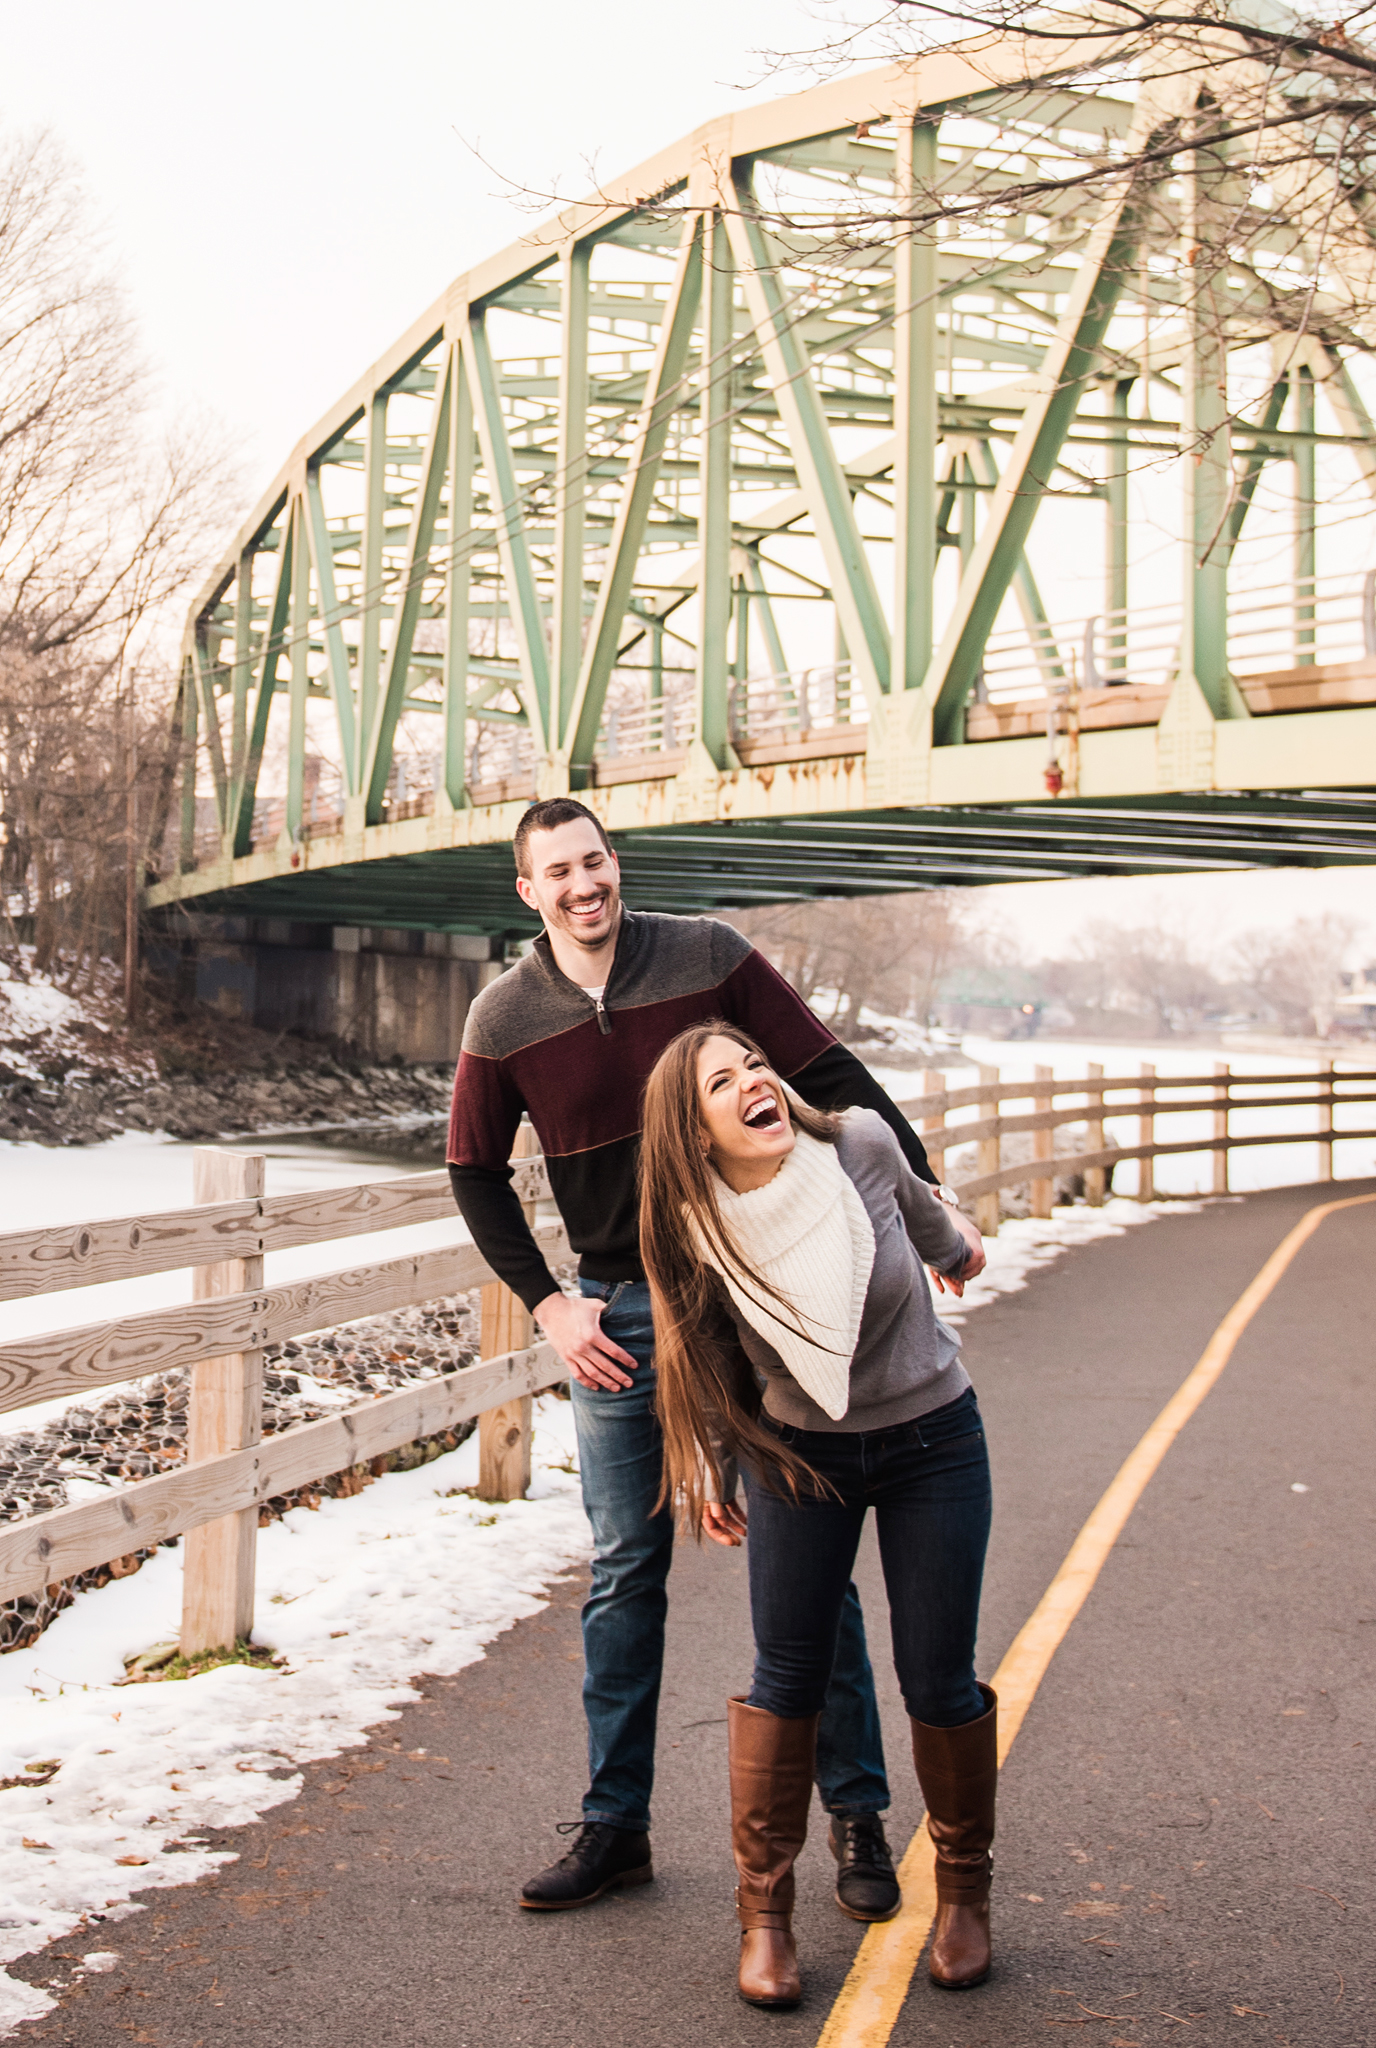 Schoen_Place_Rochester_Engagement_Session_JILL_STUDIO_Rochester_NY_Photographer_DSC_2250.jpg